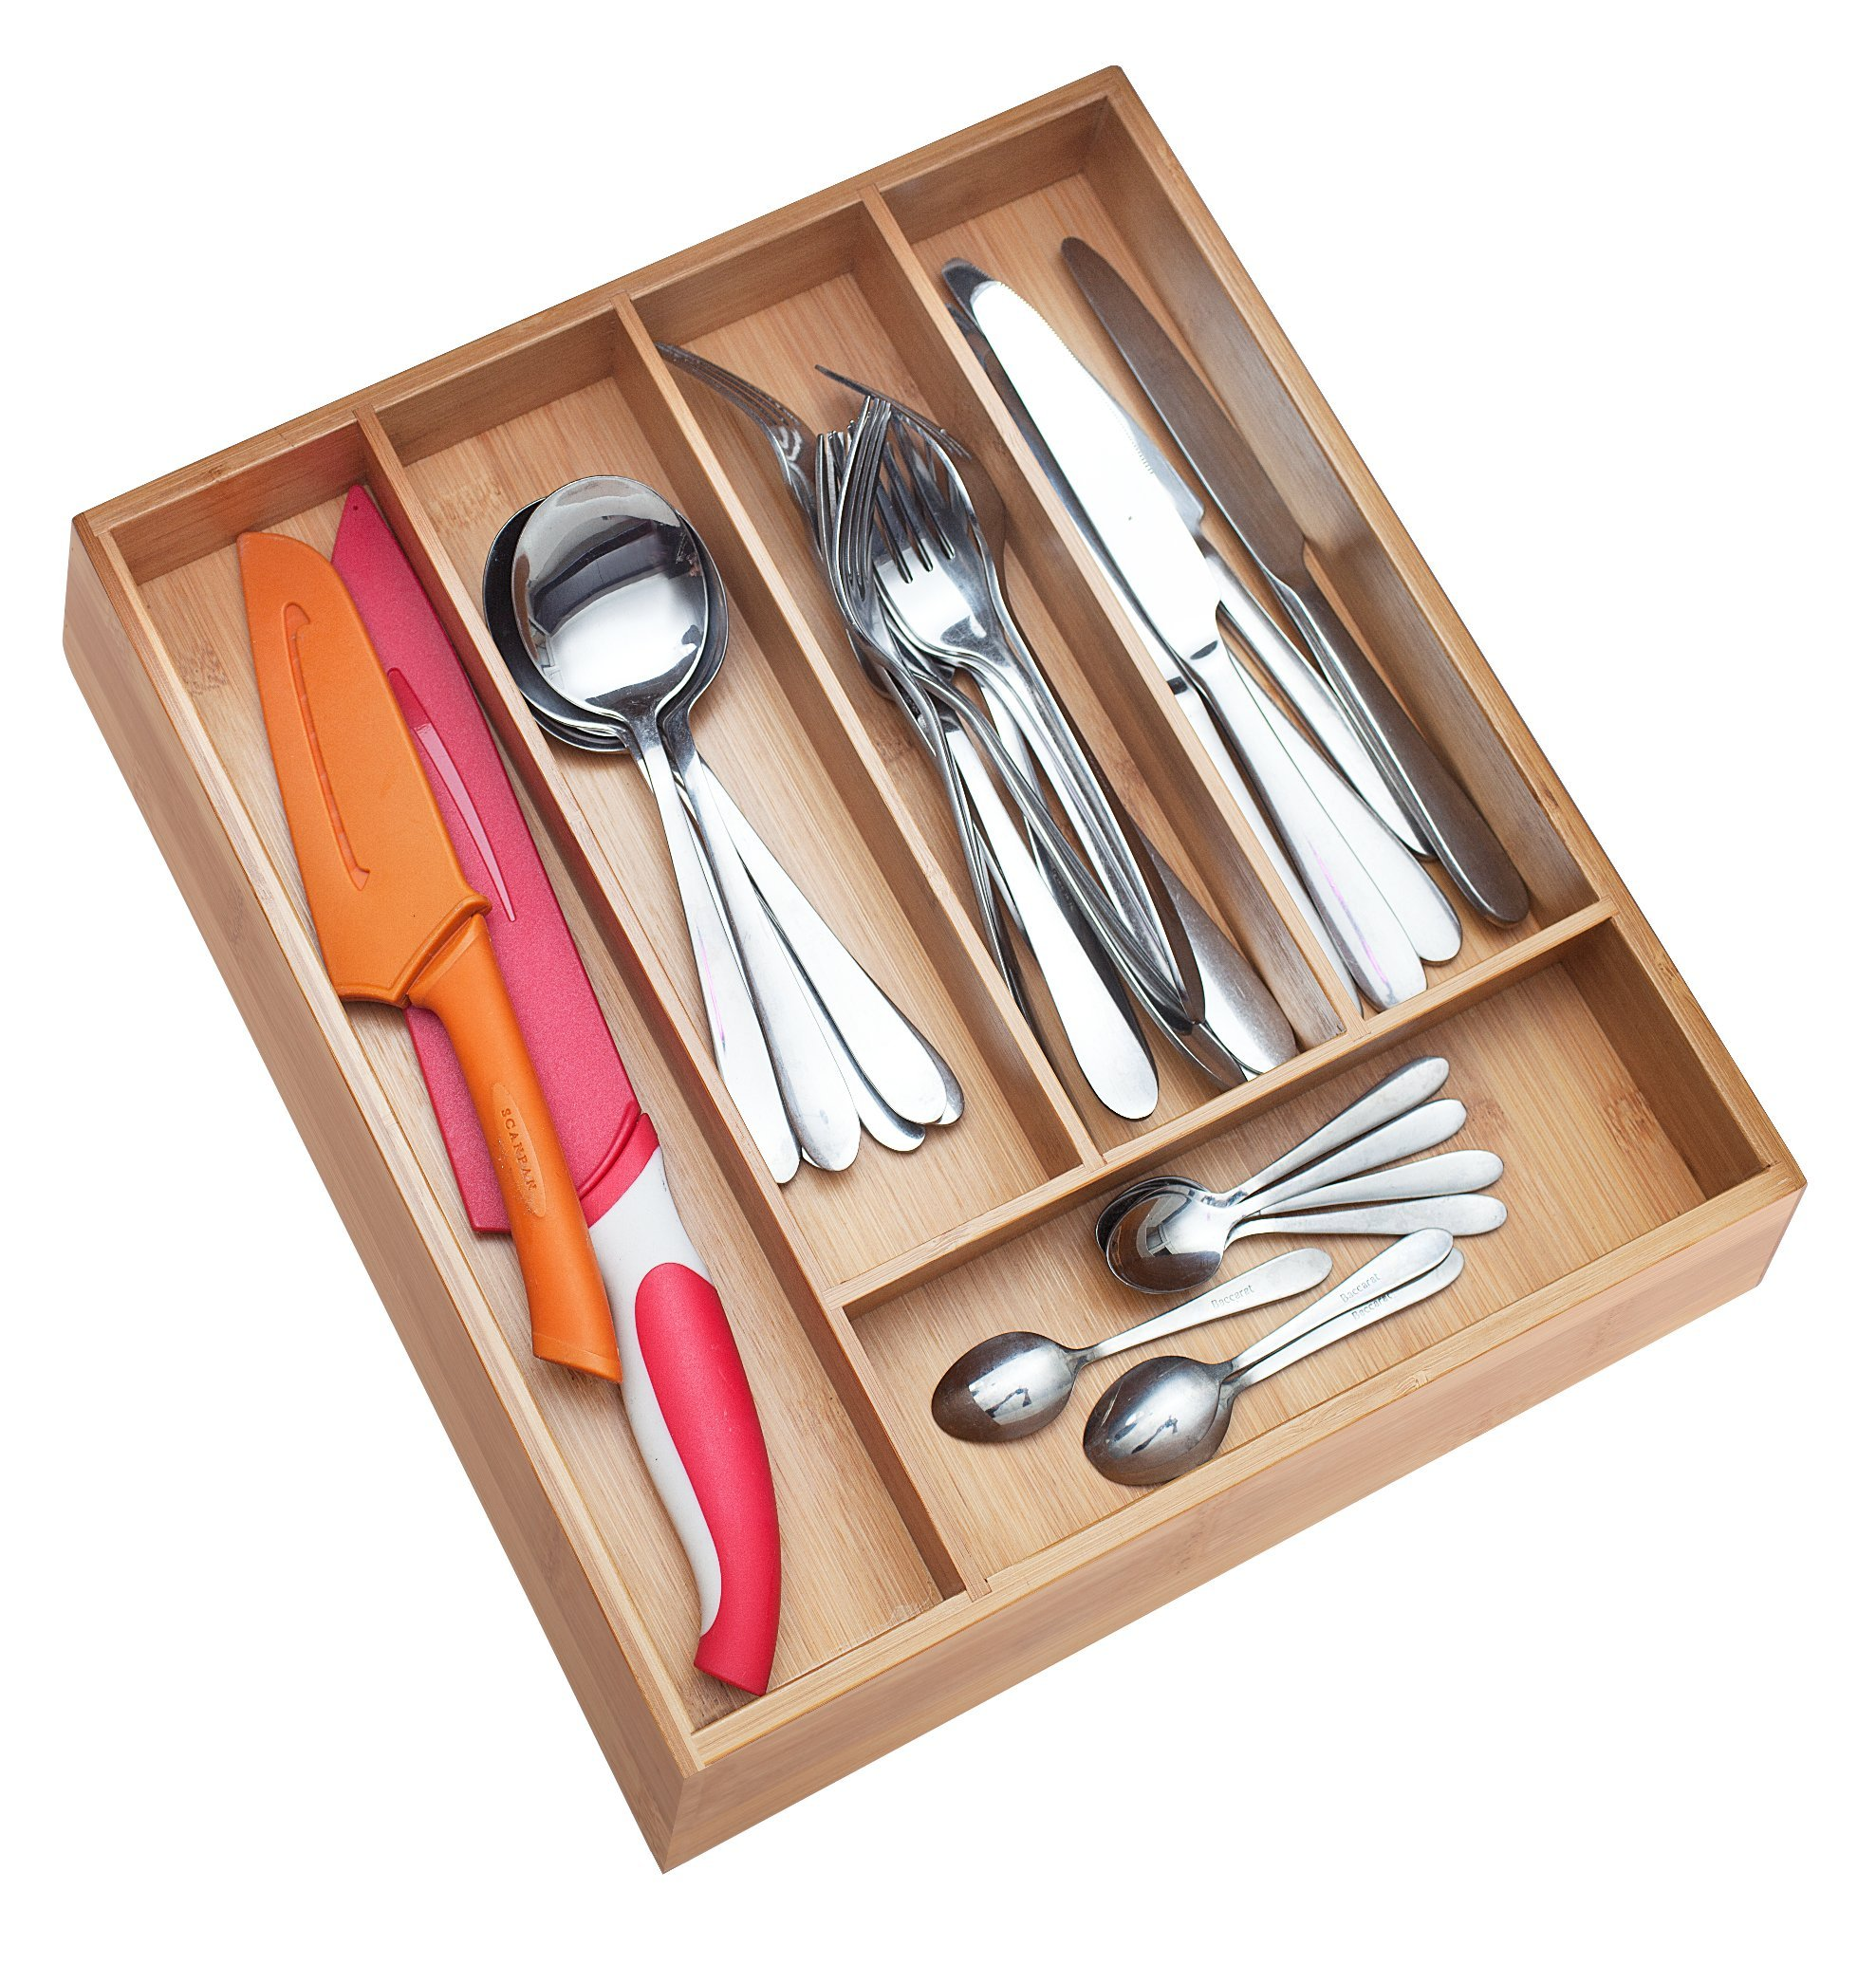 stunning x drawer countertops organizer metal grey ideas utensil kitchen utensils photo flatware full of